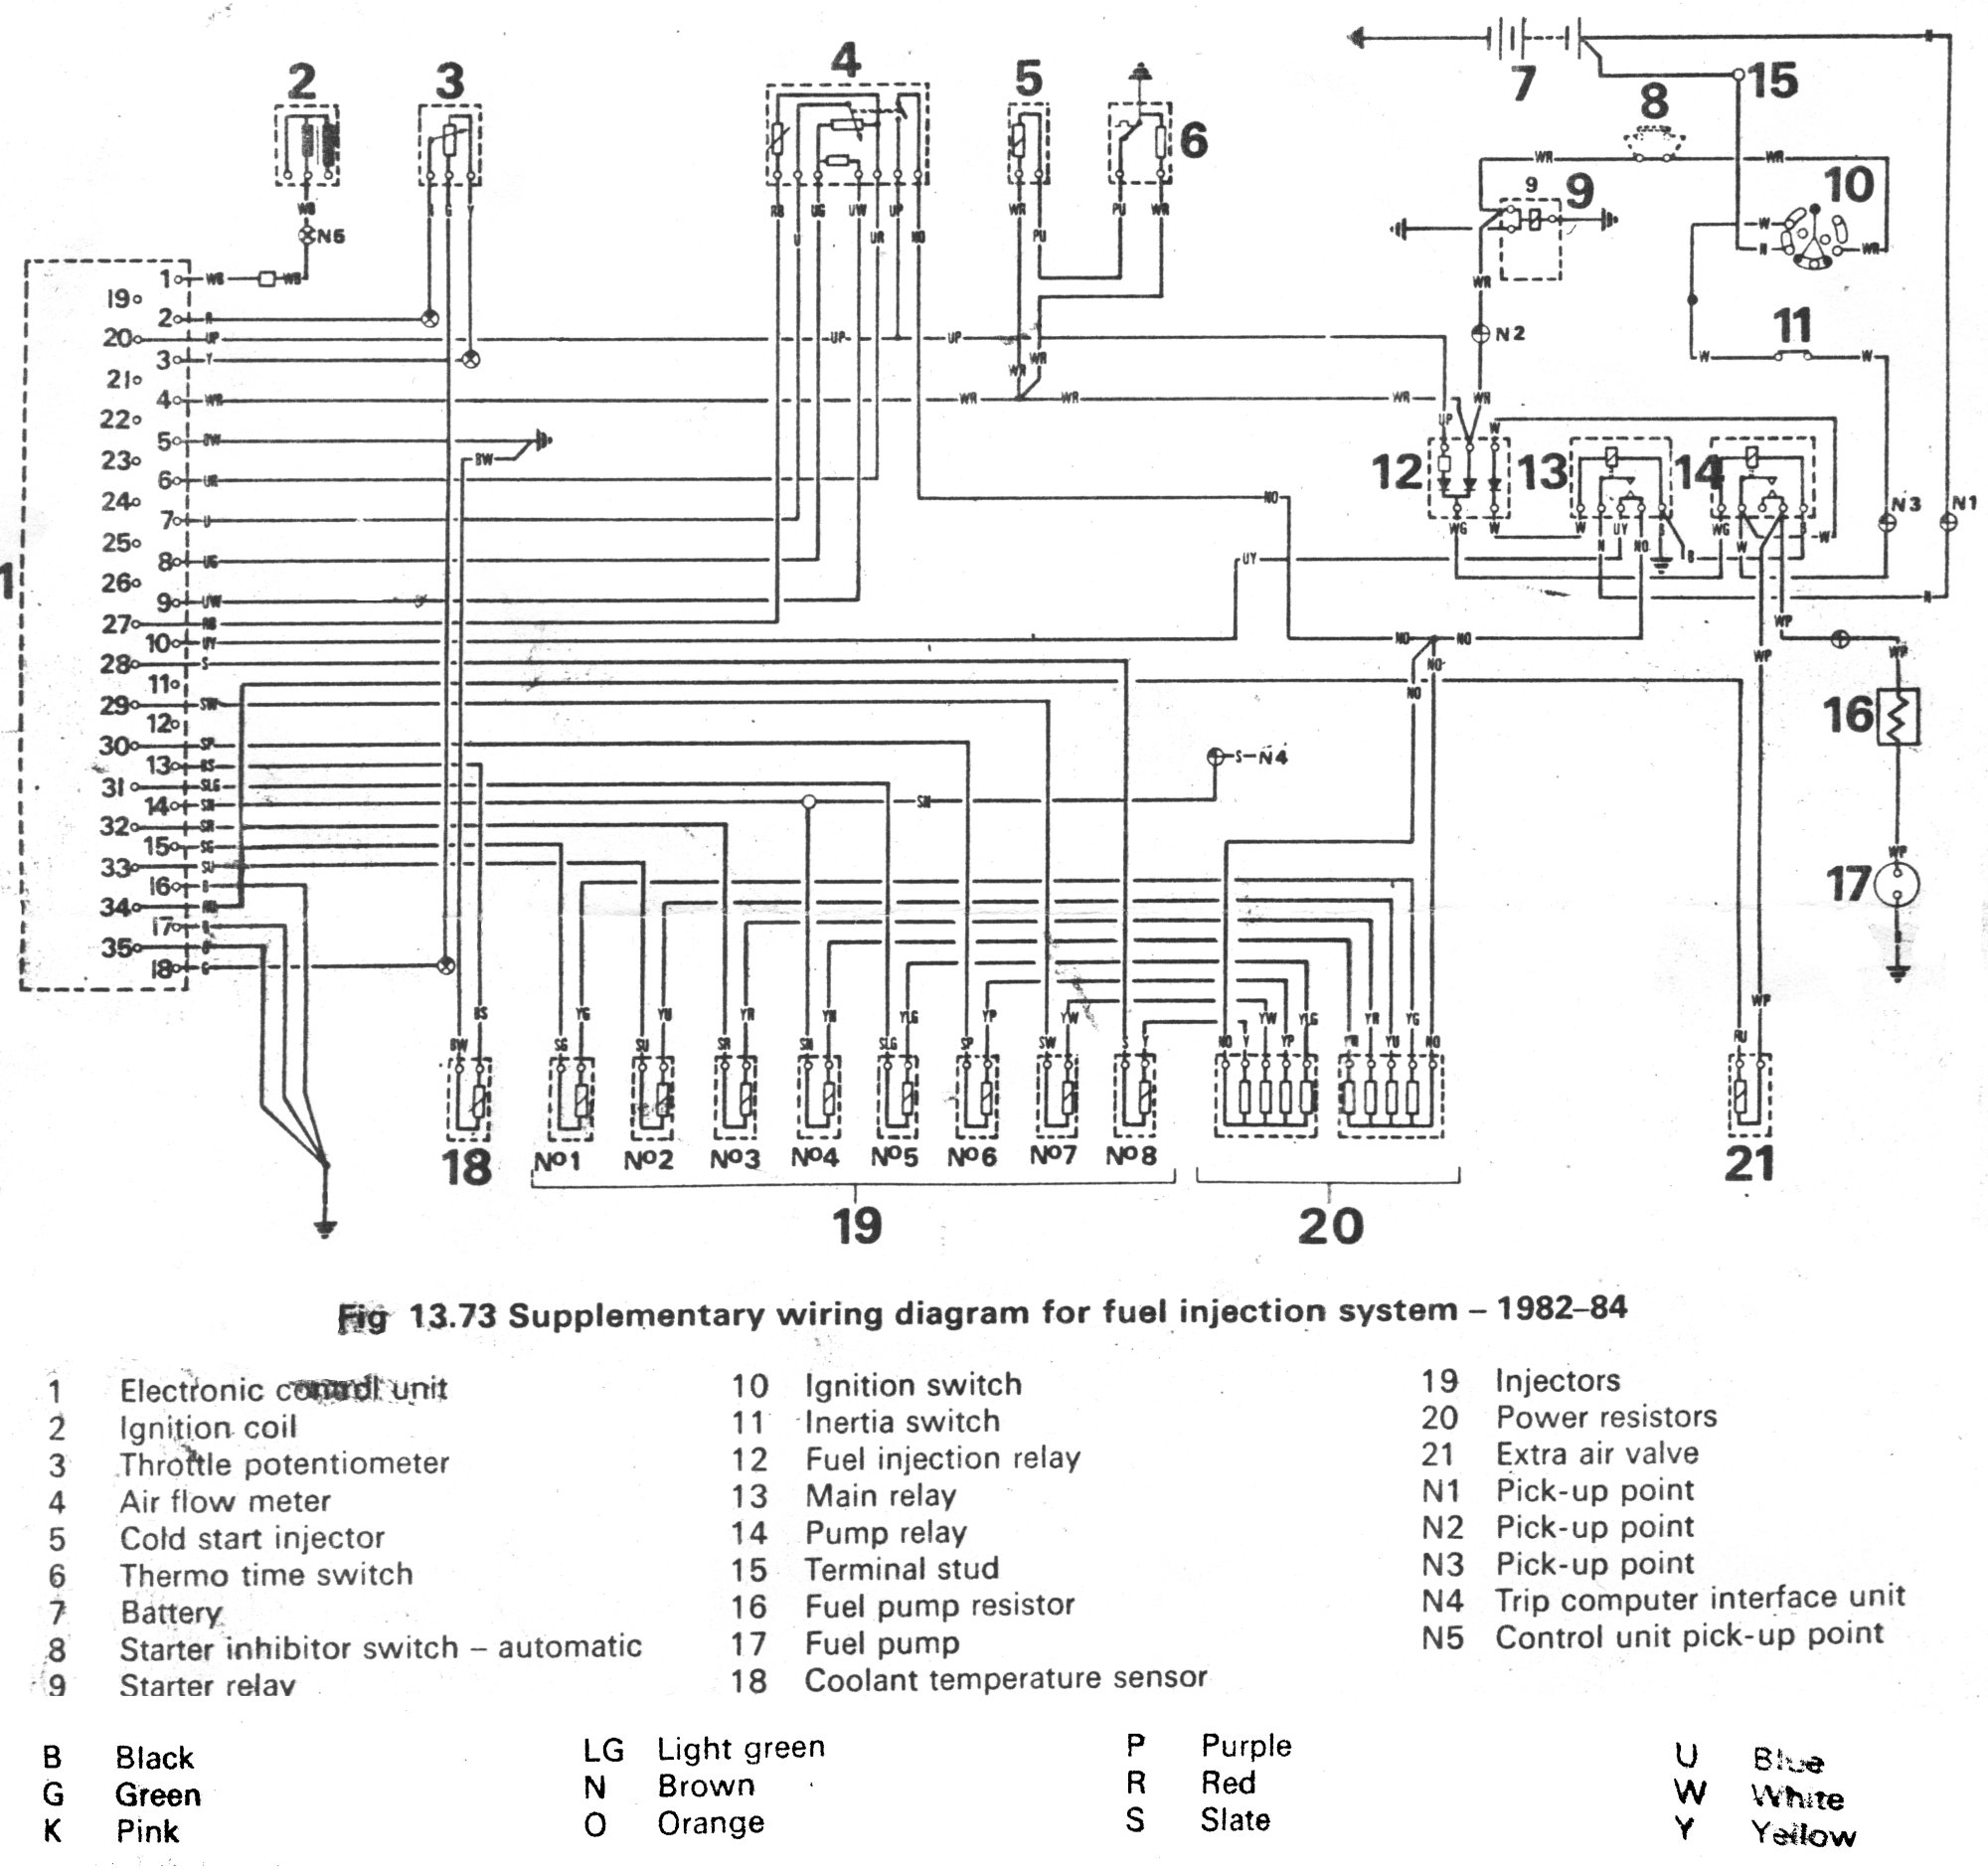 land rover discovery fuel pump wiring diagram 3v8 efi injector problem please help - range rover forum ...